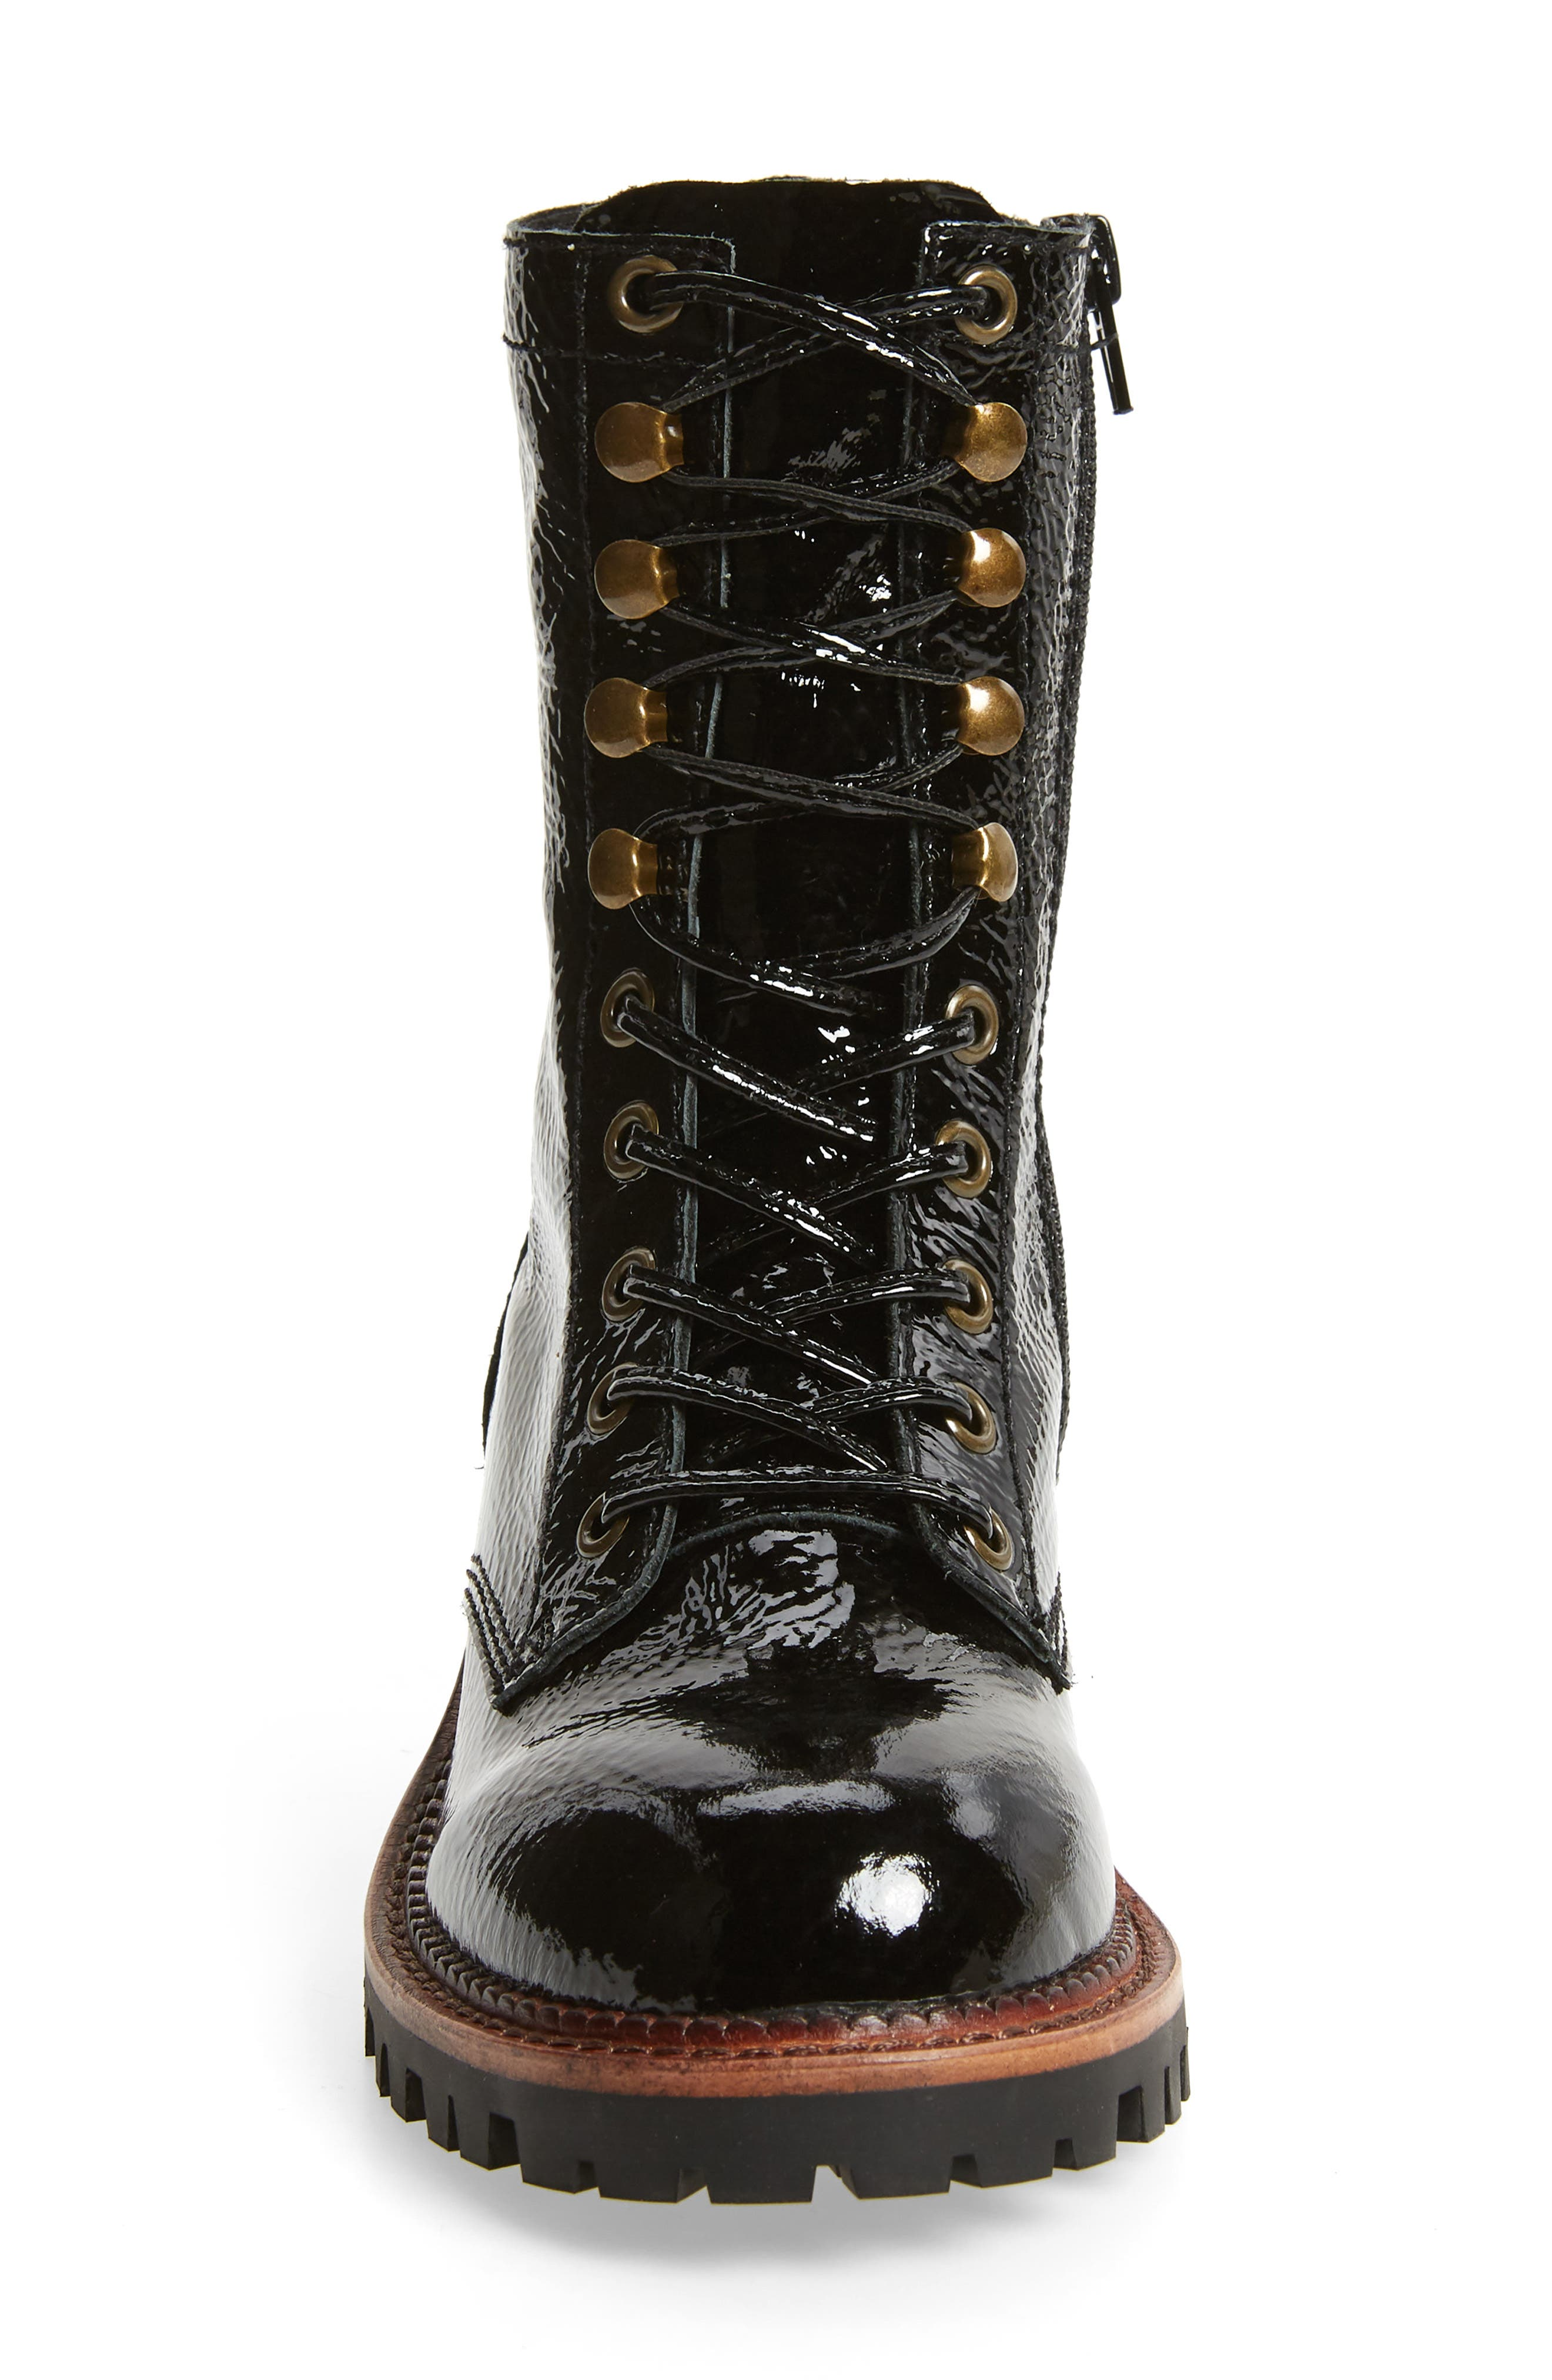 Sycamore Patent Leather Boot,                             Alternate thumbnail 4, color,                             BLACK CRINKLE PATENT LEATHER